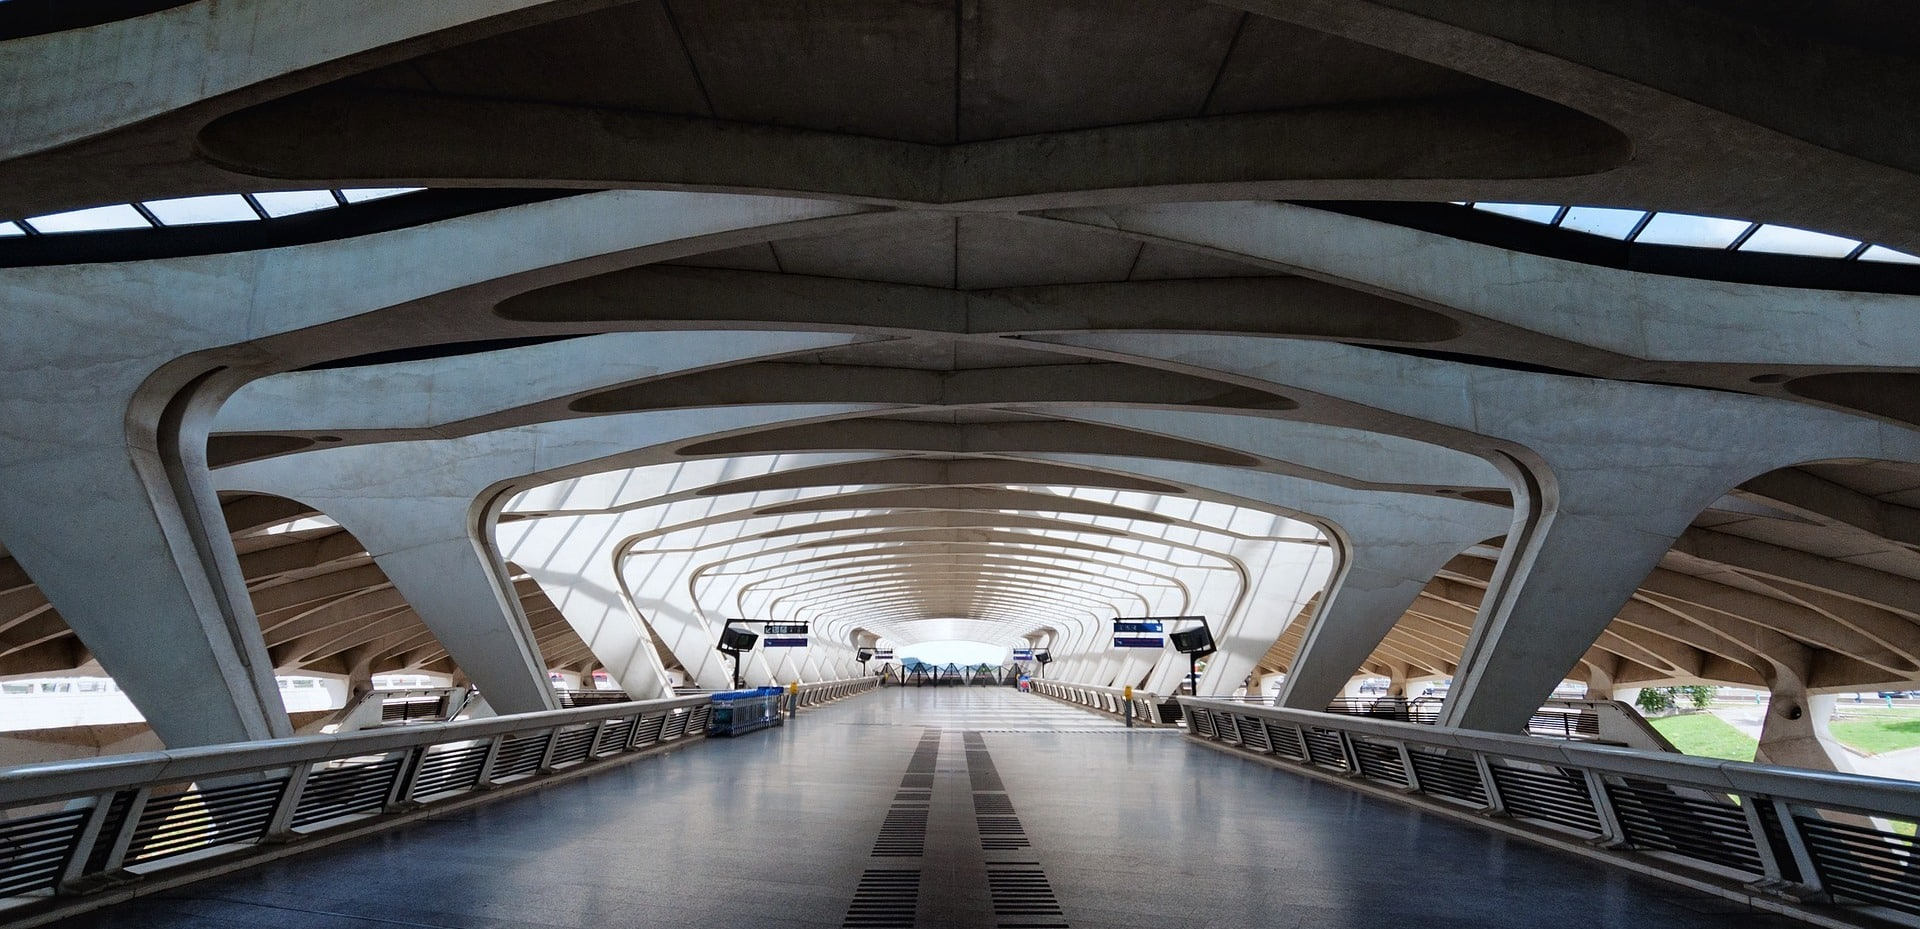 Most Instagrammable Airport in France